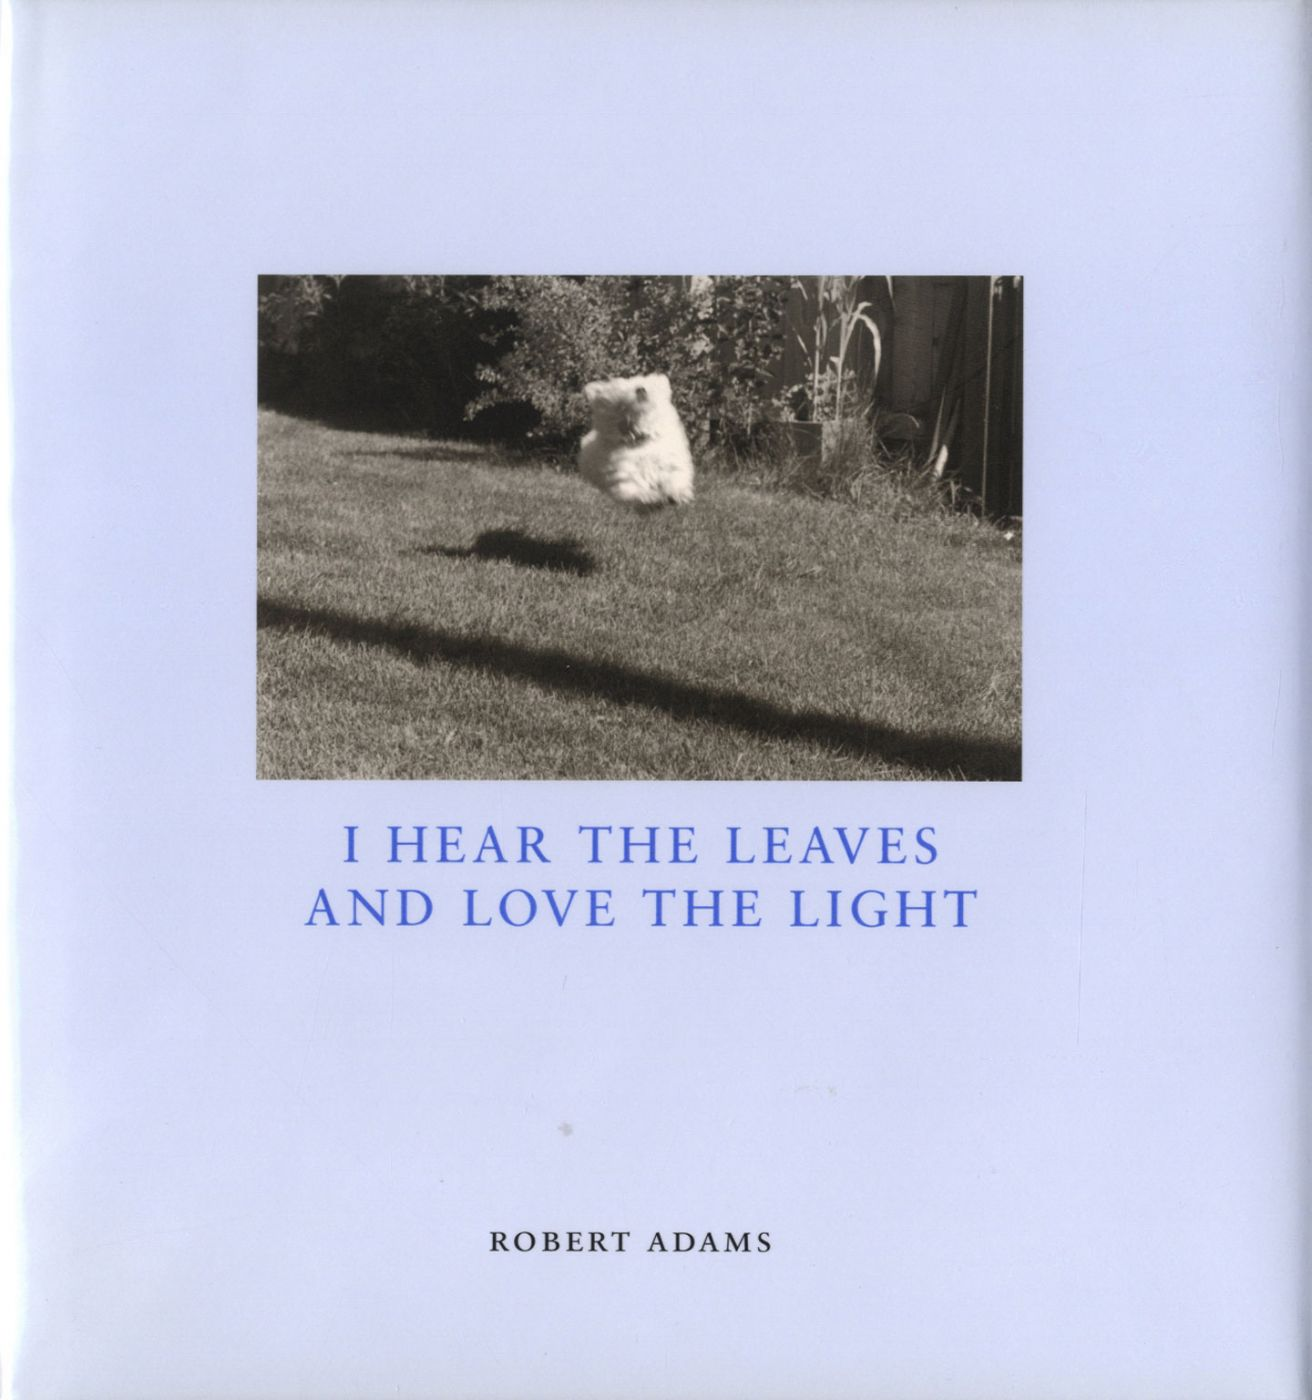 Robert Adams: I Hear the Leaves and Love the Light